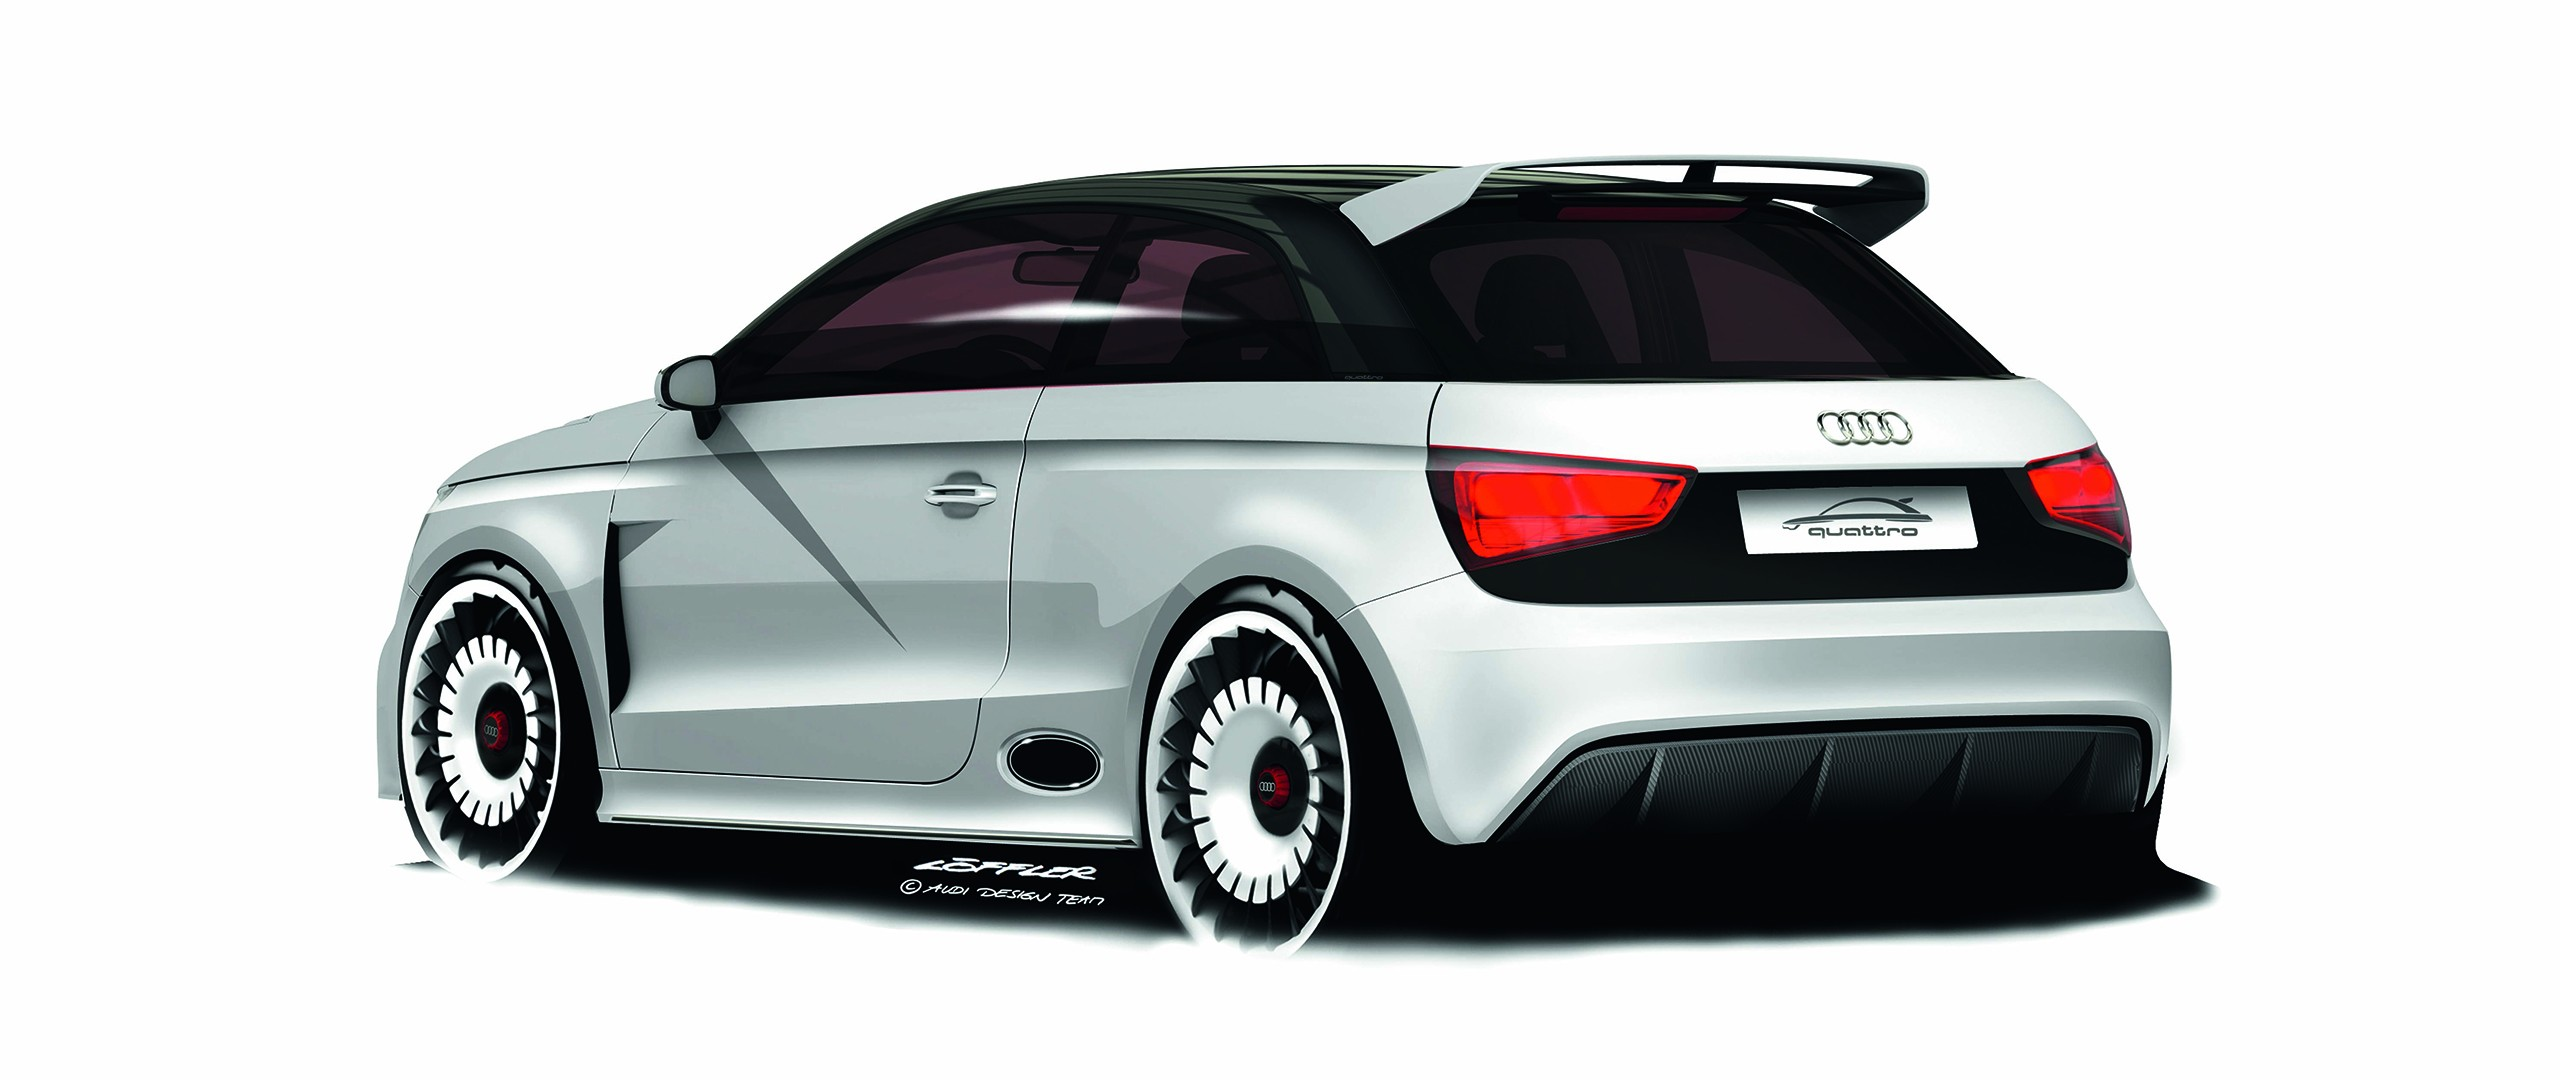 General 2560x1080 Audi A1 car vehicle simple background artwork